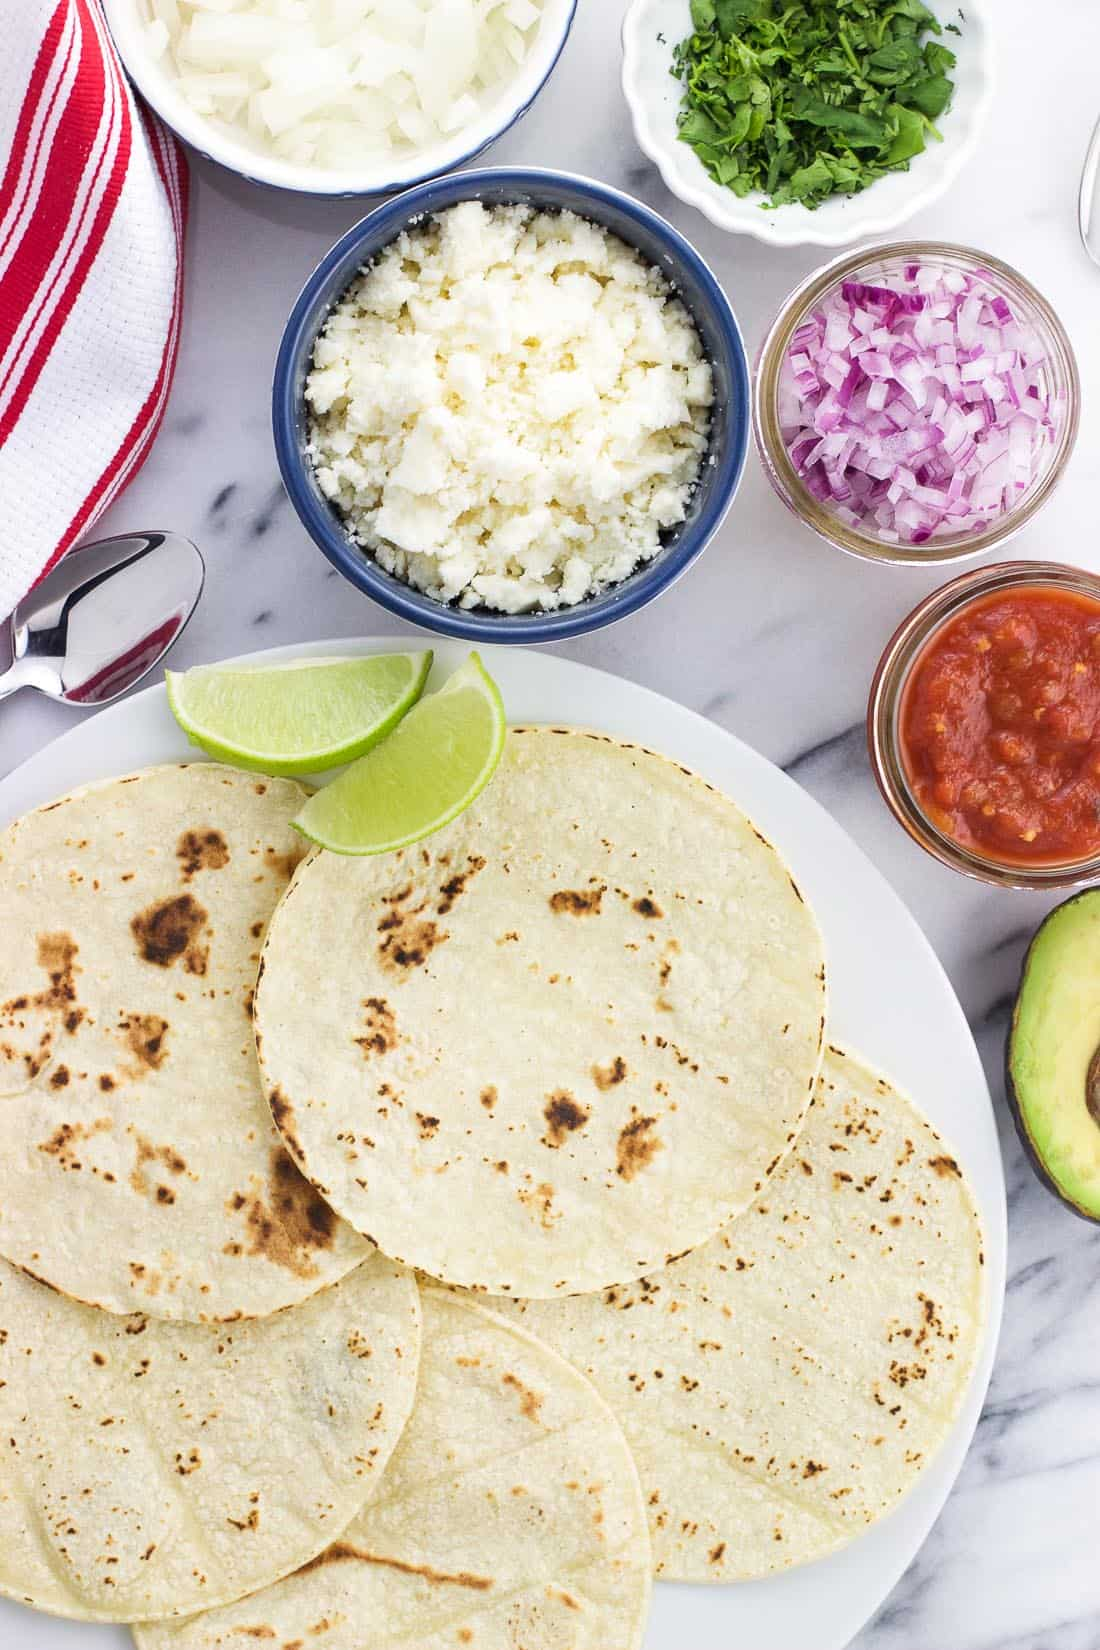 An overhead shot of all the taco fixings, including tortillas, cotija cheese, red onion, salsa, lime wedges, and avocado.